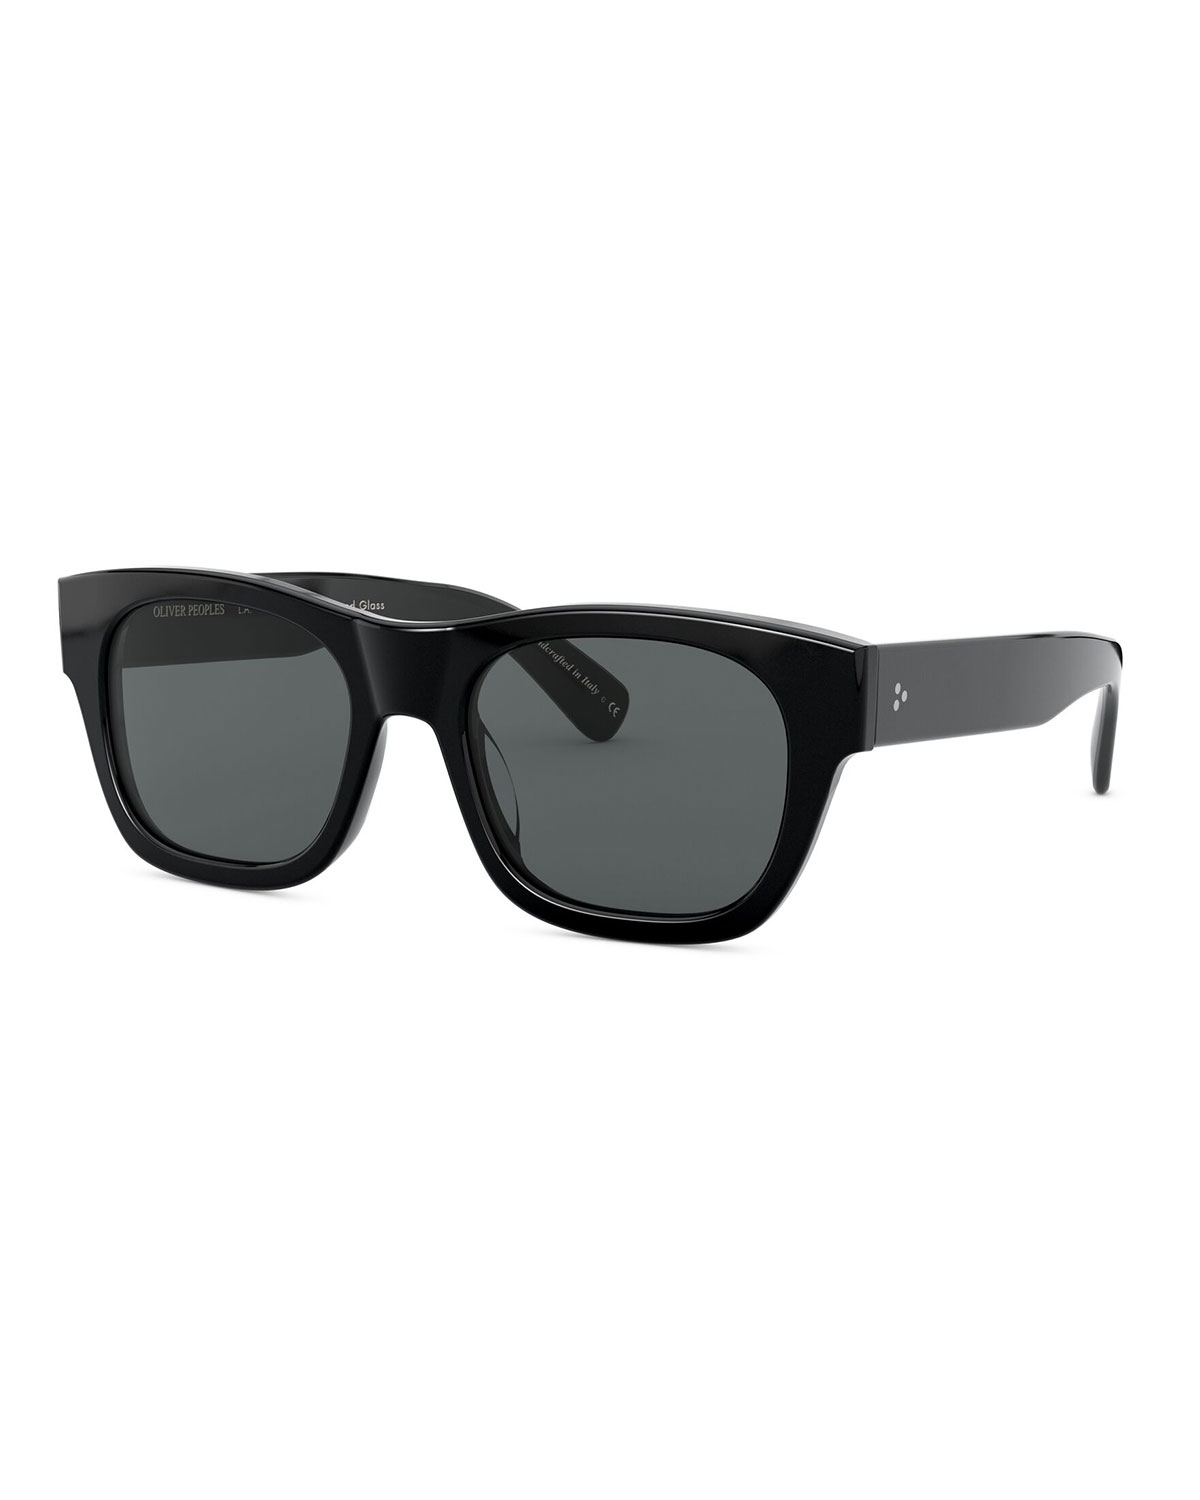 Oliver Peoples Men's Keenan Square Polarized Sunglasses